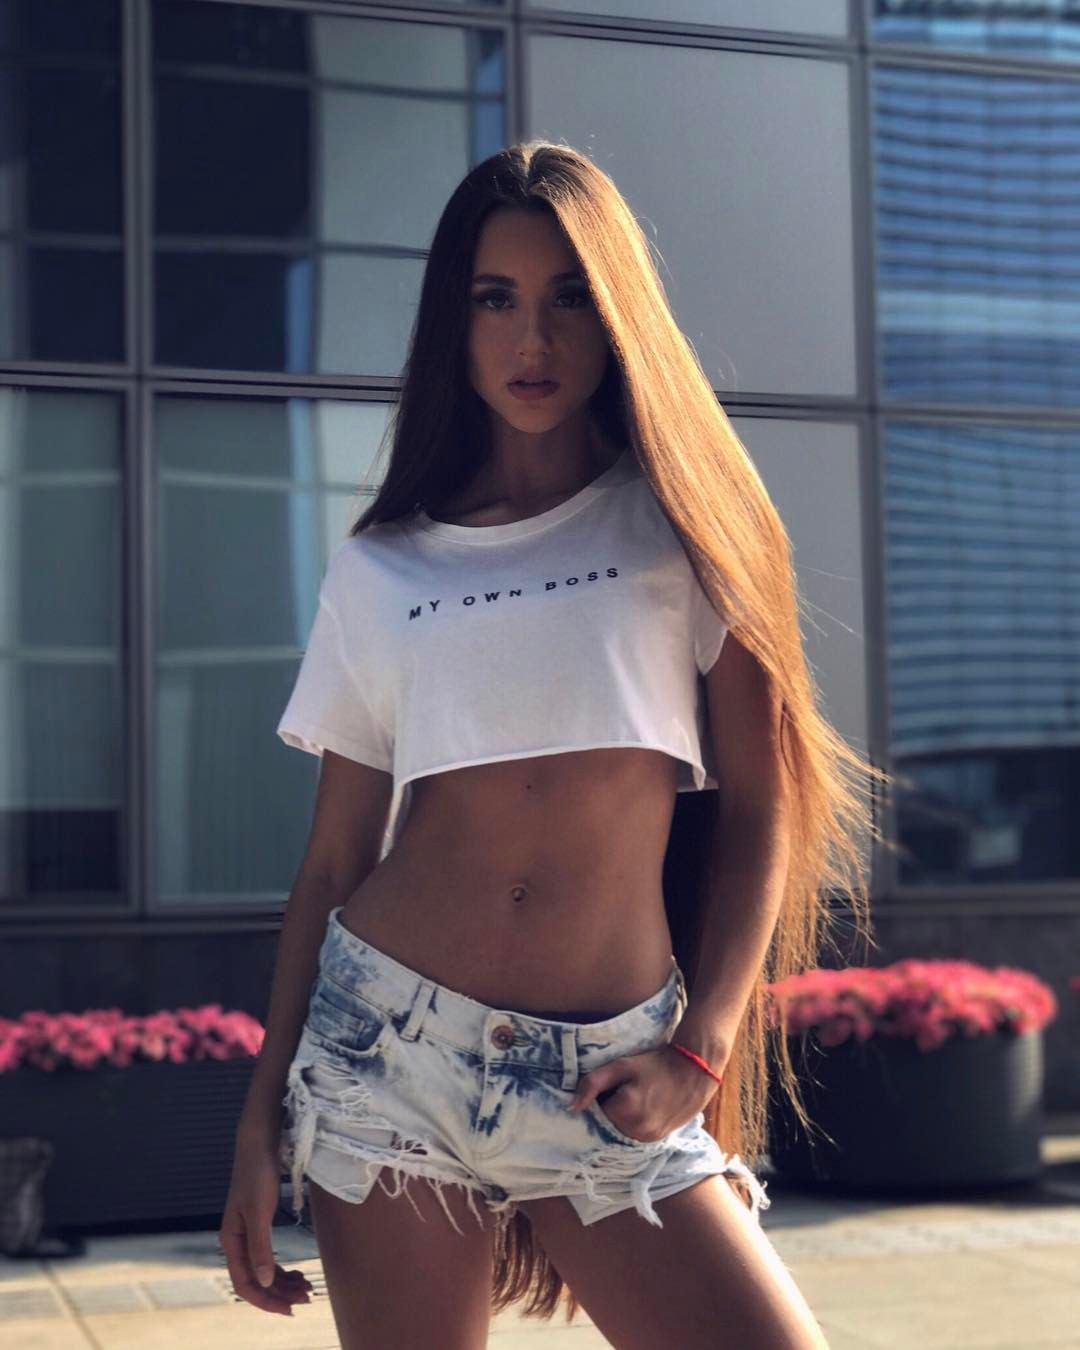 Gabriella Onion Booty in vilnius#lithuaniangirl#happy#brunette#darkhair#longhair | long